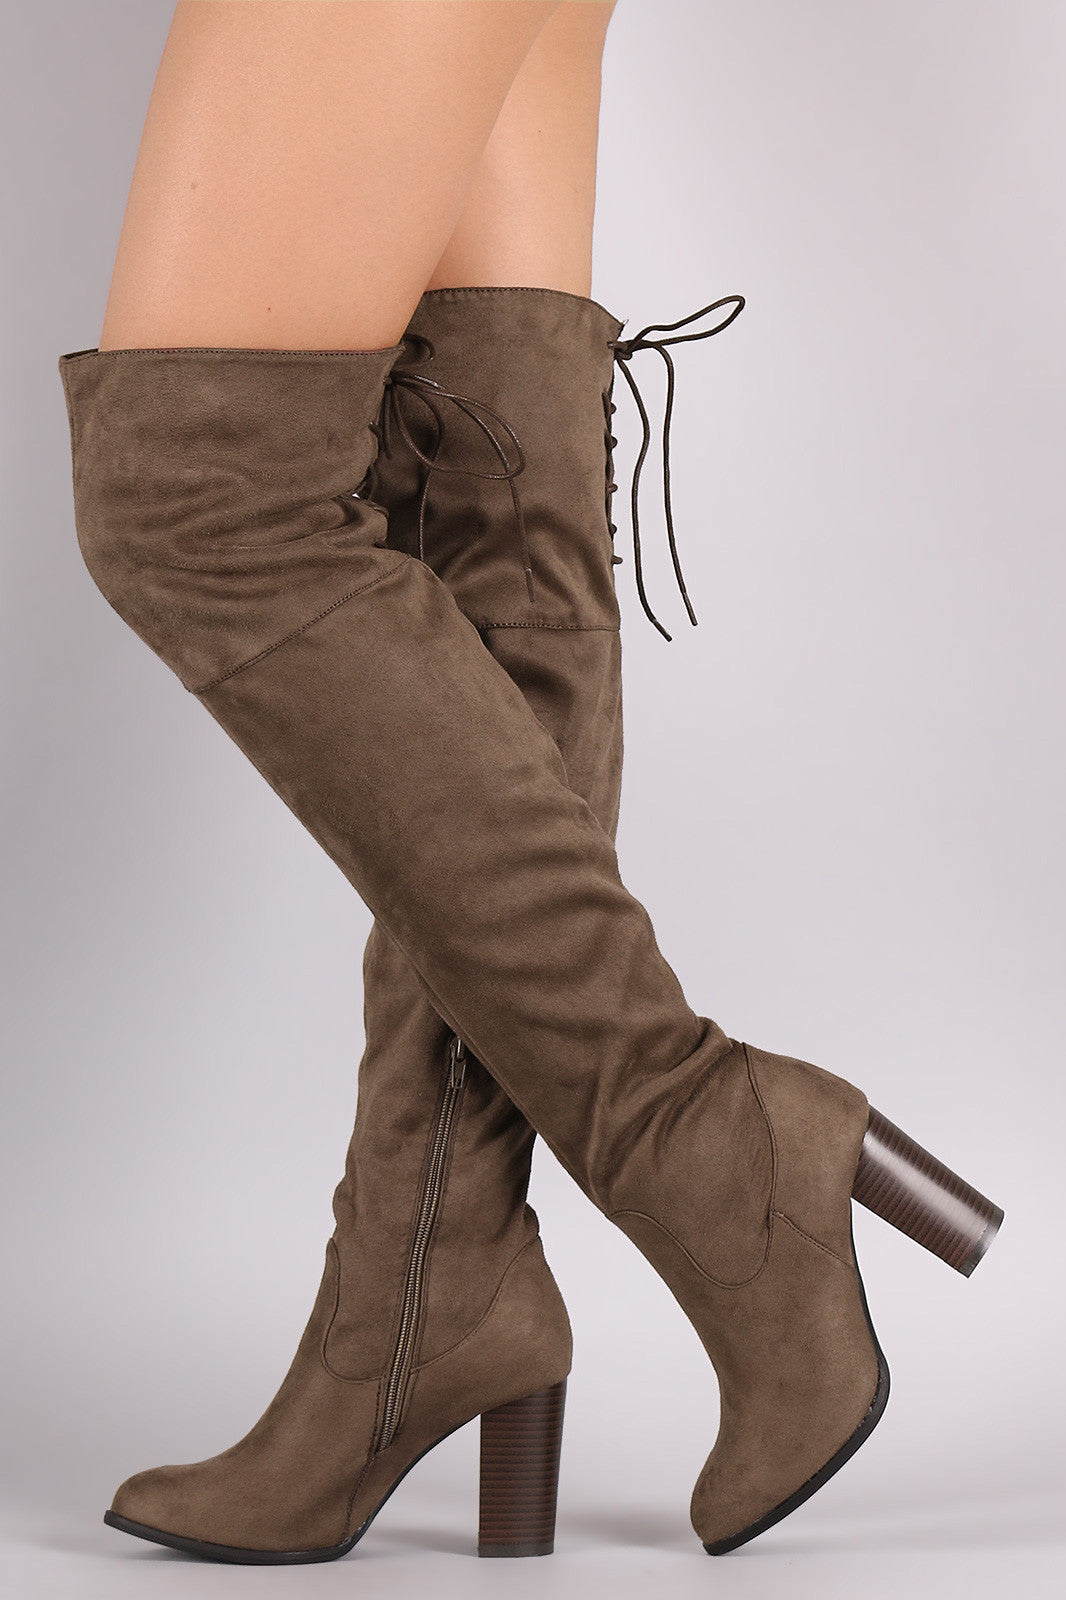 Back lace up boots - Back Lace Up Boots 60